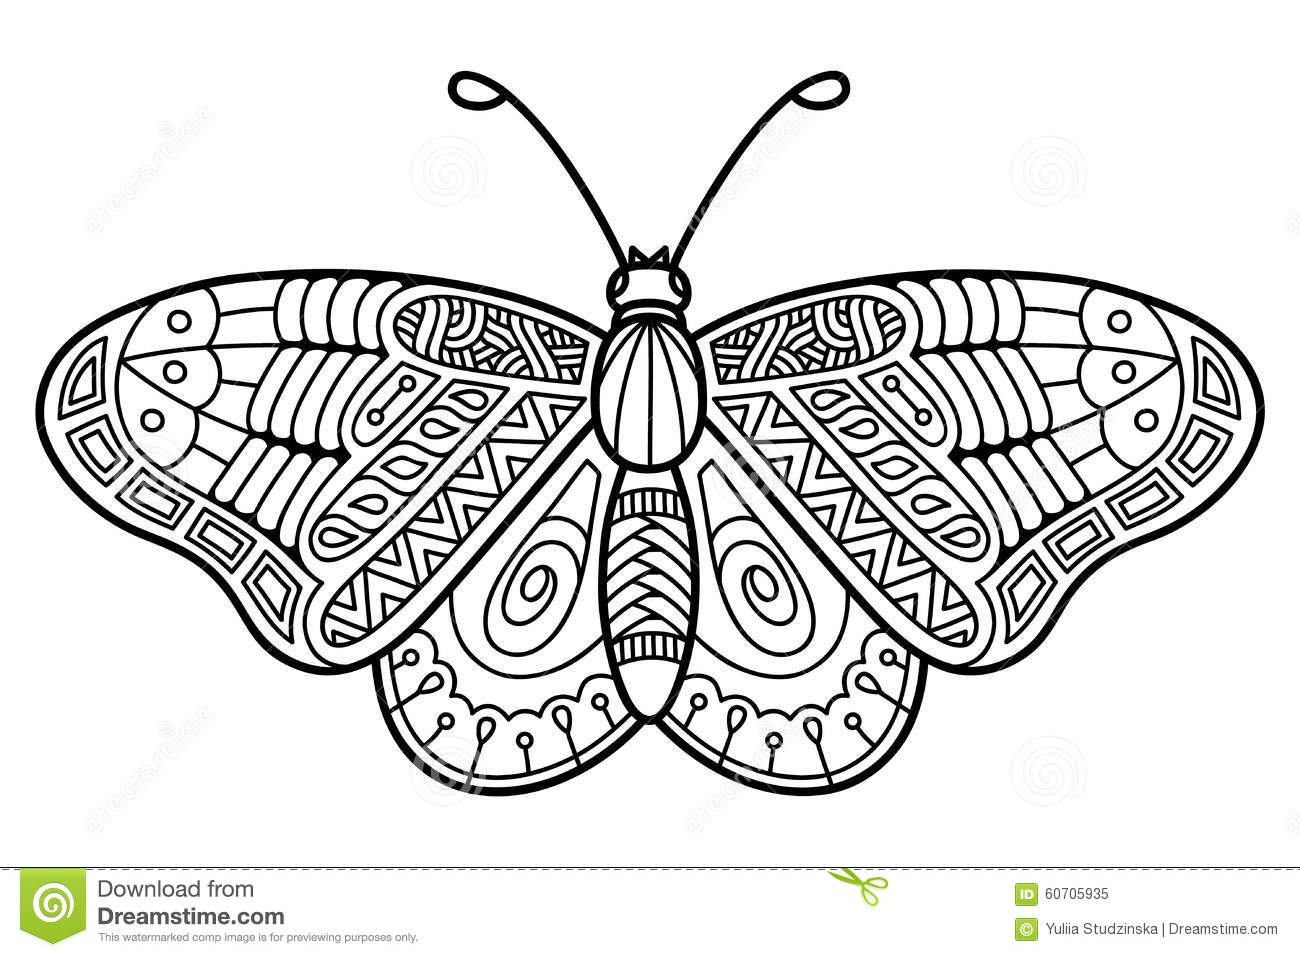 Vector Illustration Of Cute Ornate Zentangle Butterfly For Children Or Adult Anti Stress Coloring Book